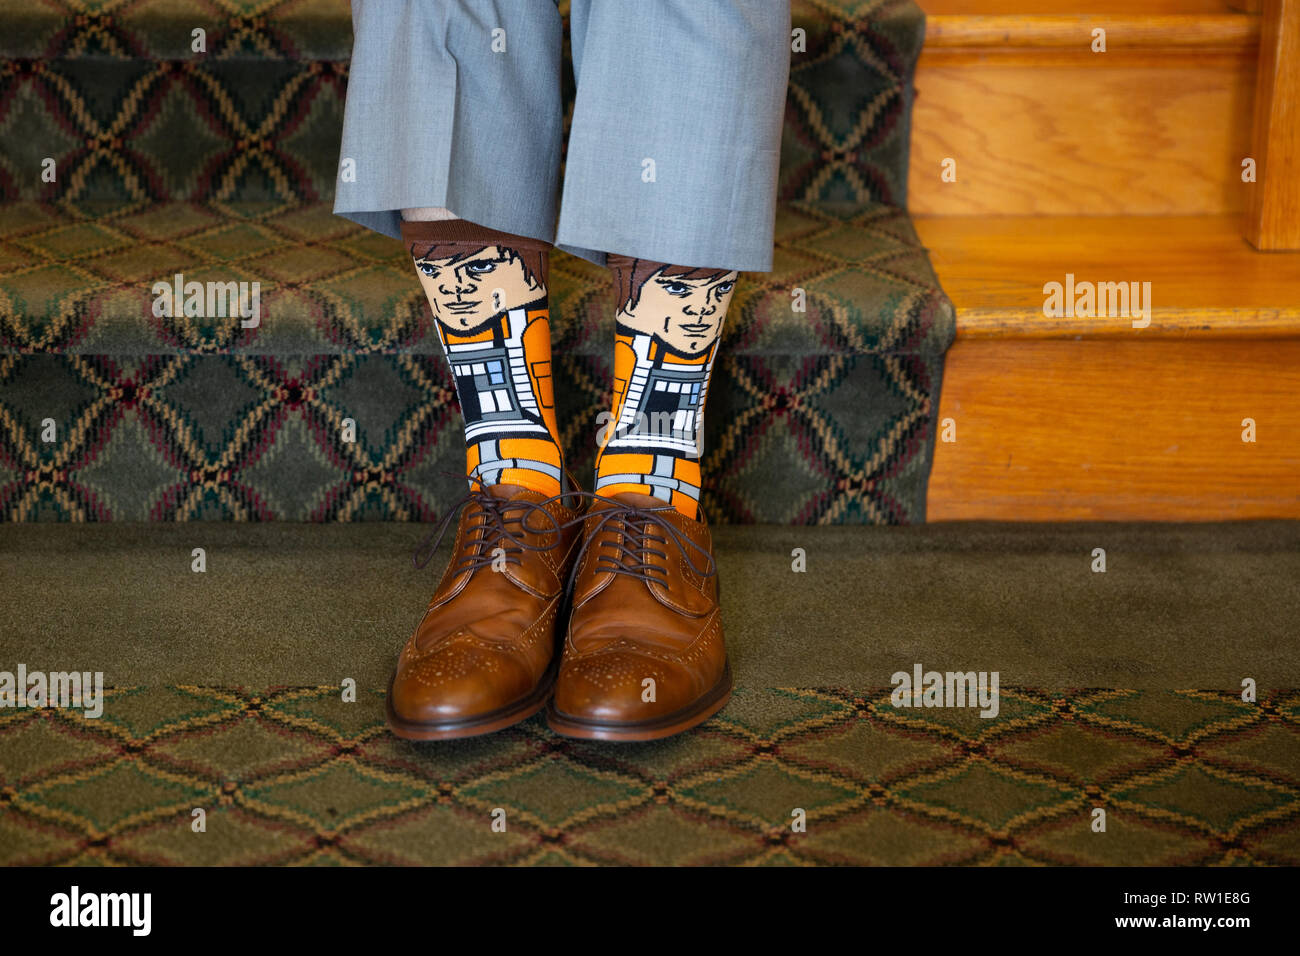 Groom on wedding day showing styled Luke Skywalker-themed socks with brown shoes and grey pants - Stock Image